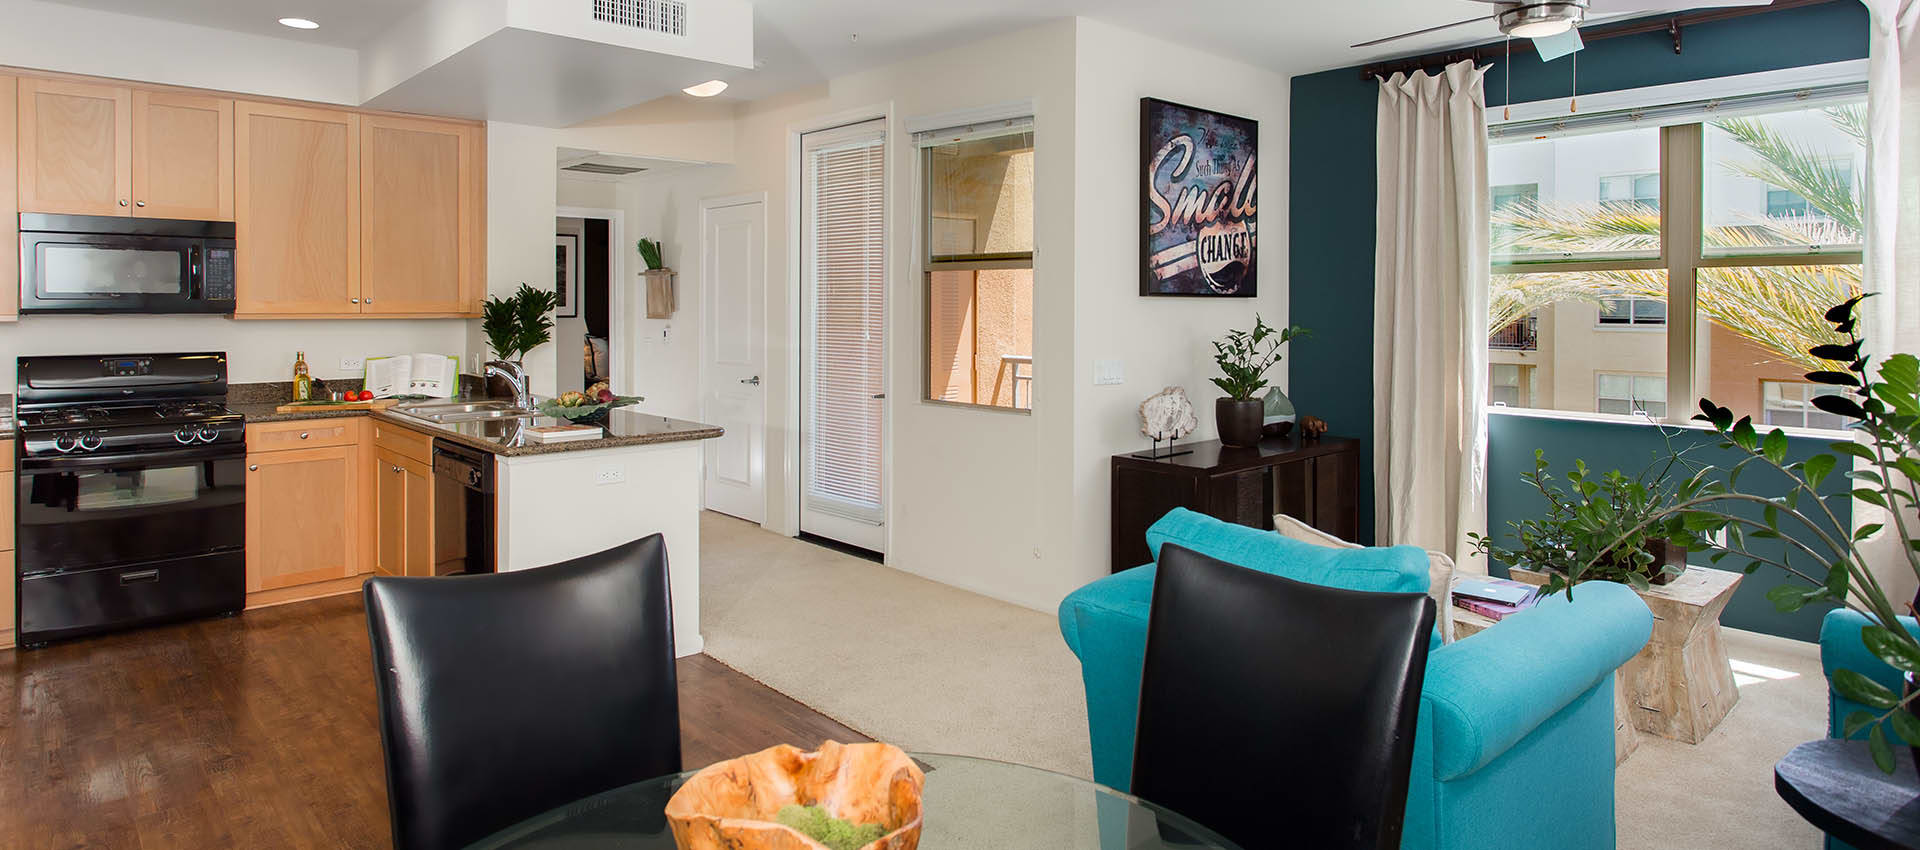 Open floor plans at Paragon at Old Town in Monrovia